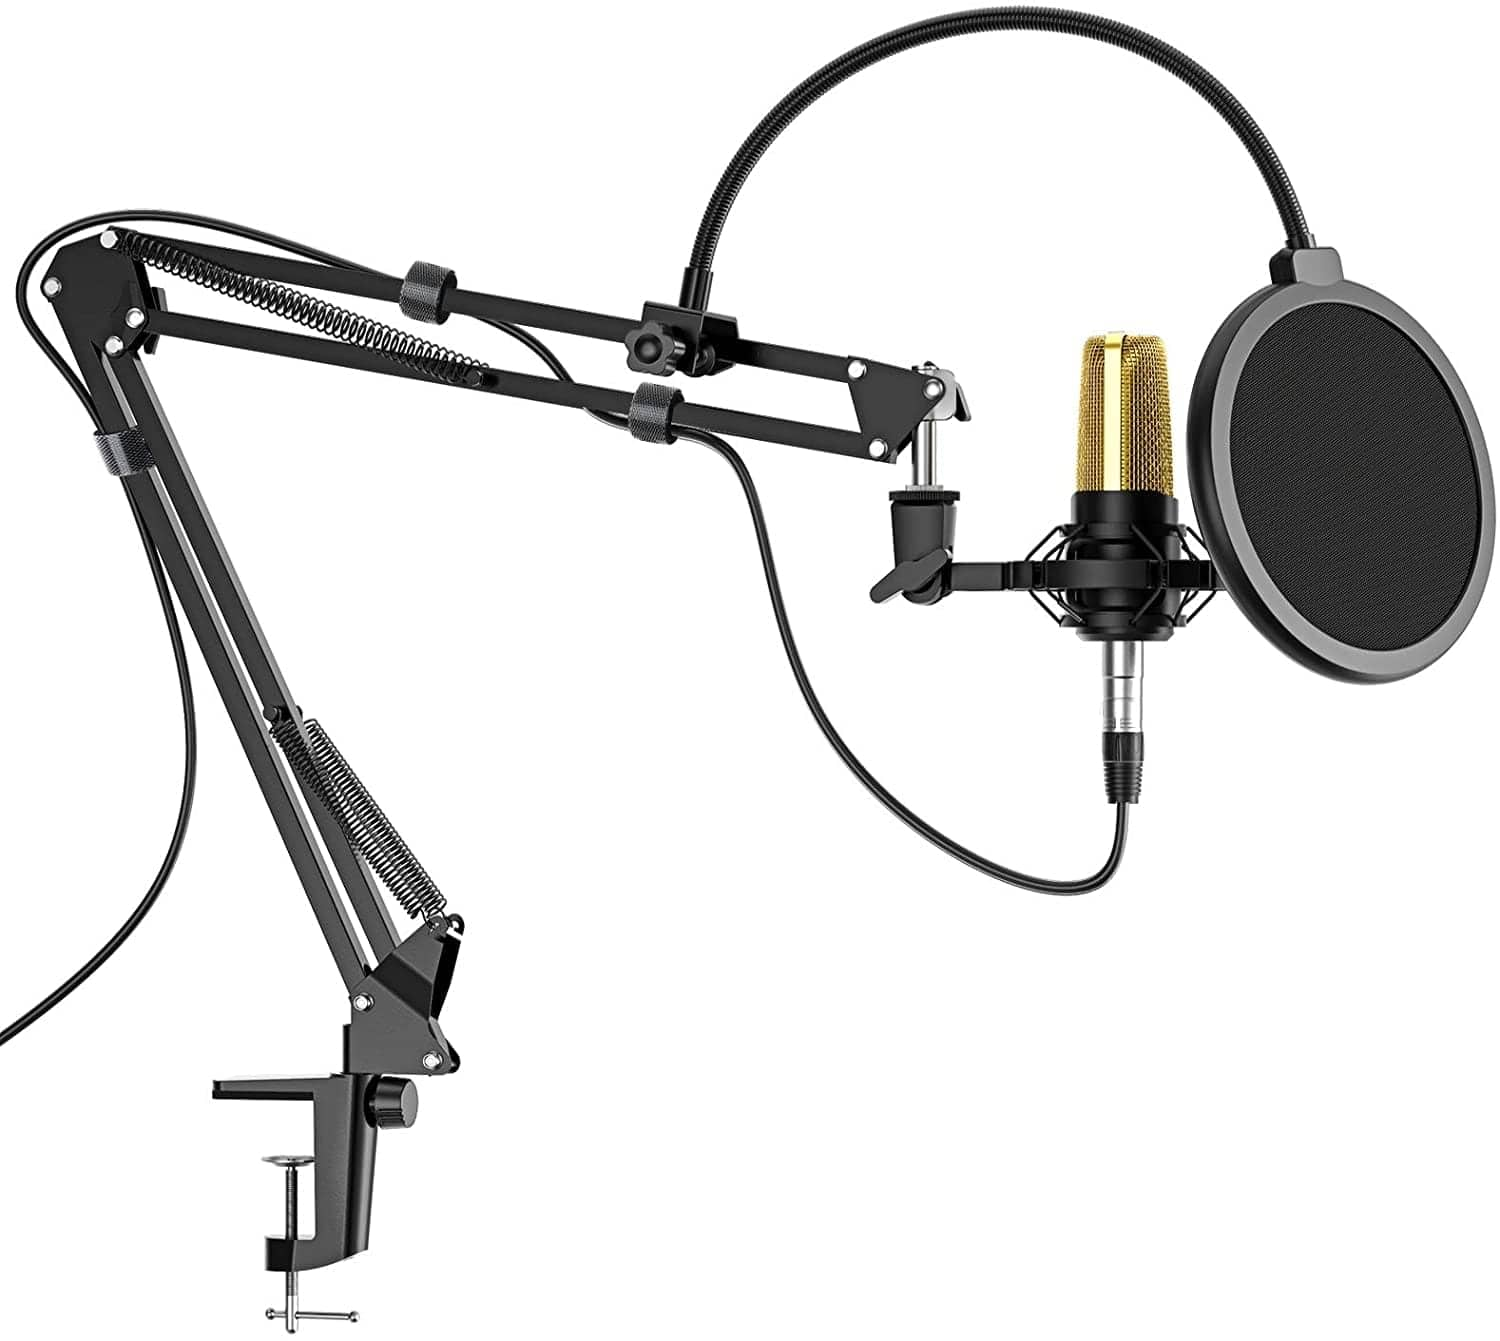 Microphone Arm Stand Suspension Scissor with Mic Shock Mount, Pop Filter $10.95 + Free Shipping w/ Prime or on $25+